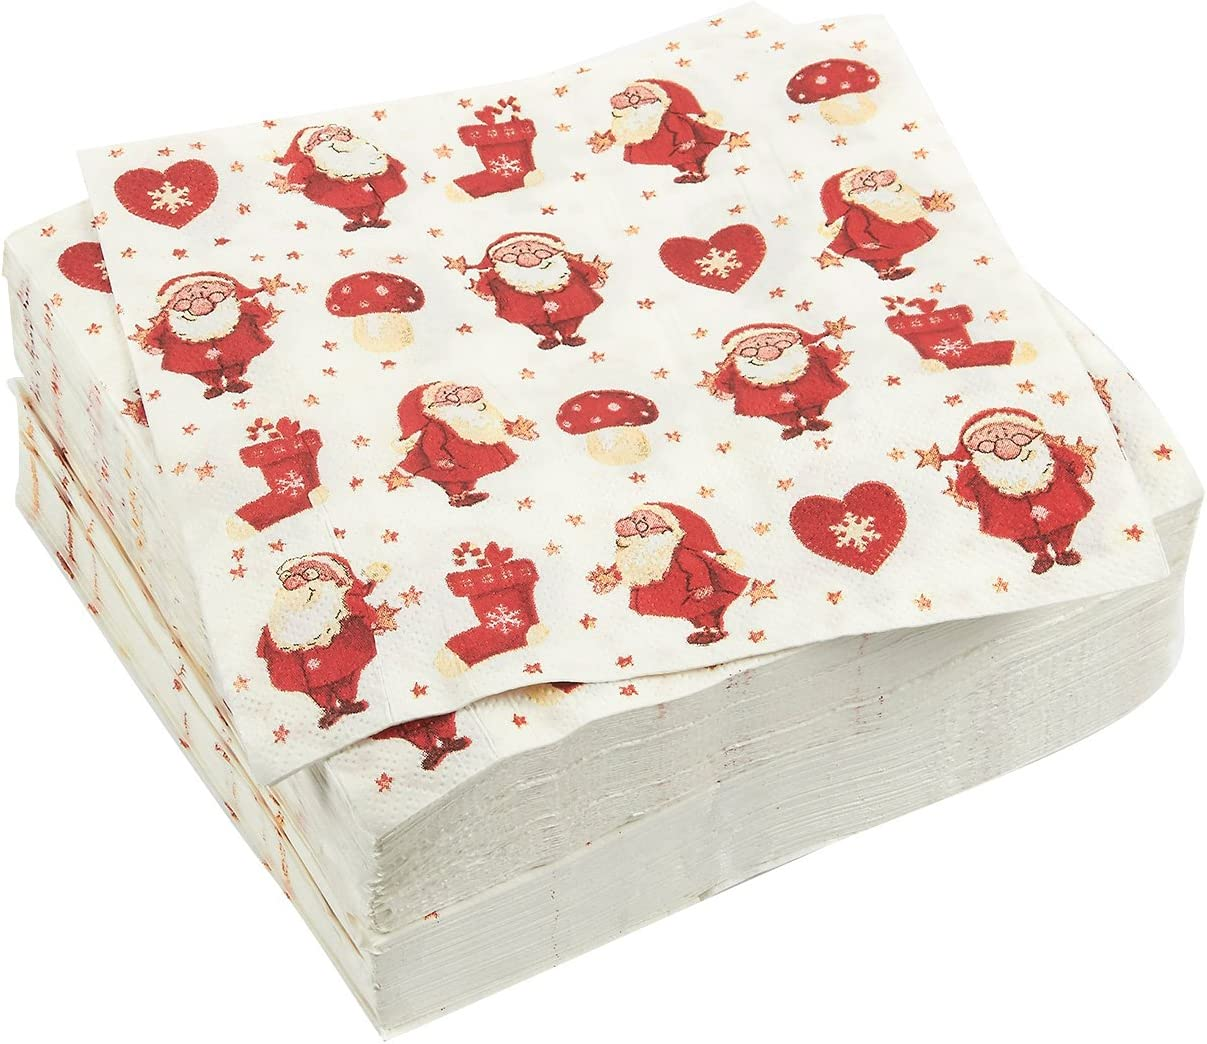 100-Pack Cocktail Napkins - Christmas Themed Disposable Paper Party Napkins with Santa Claus Prints - Soft and Absorbent - Perfect for Luncheons  Dinners and Celebrations - 6 5 x 6 5 Inches Folded